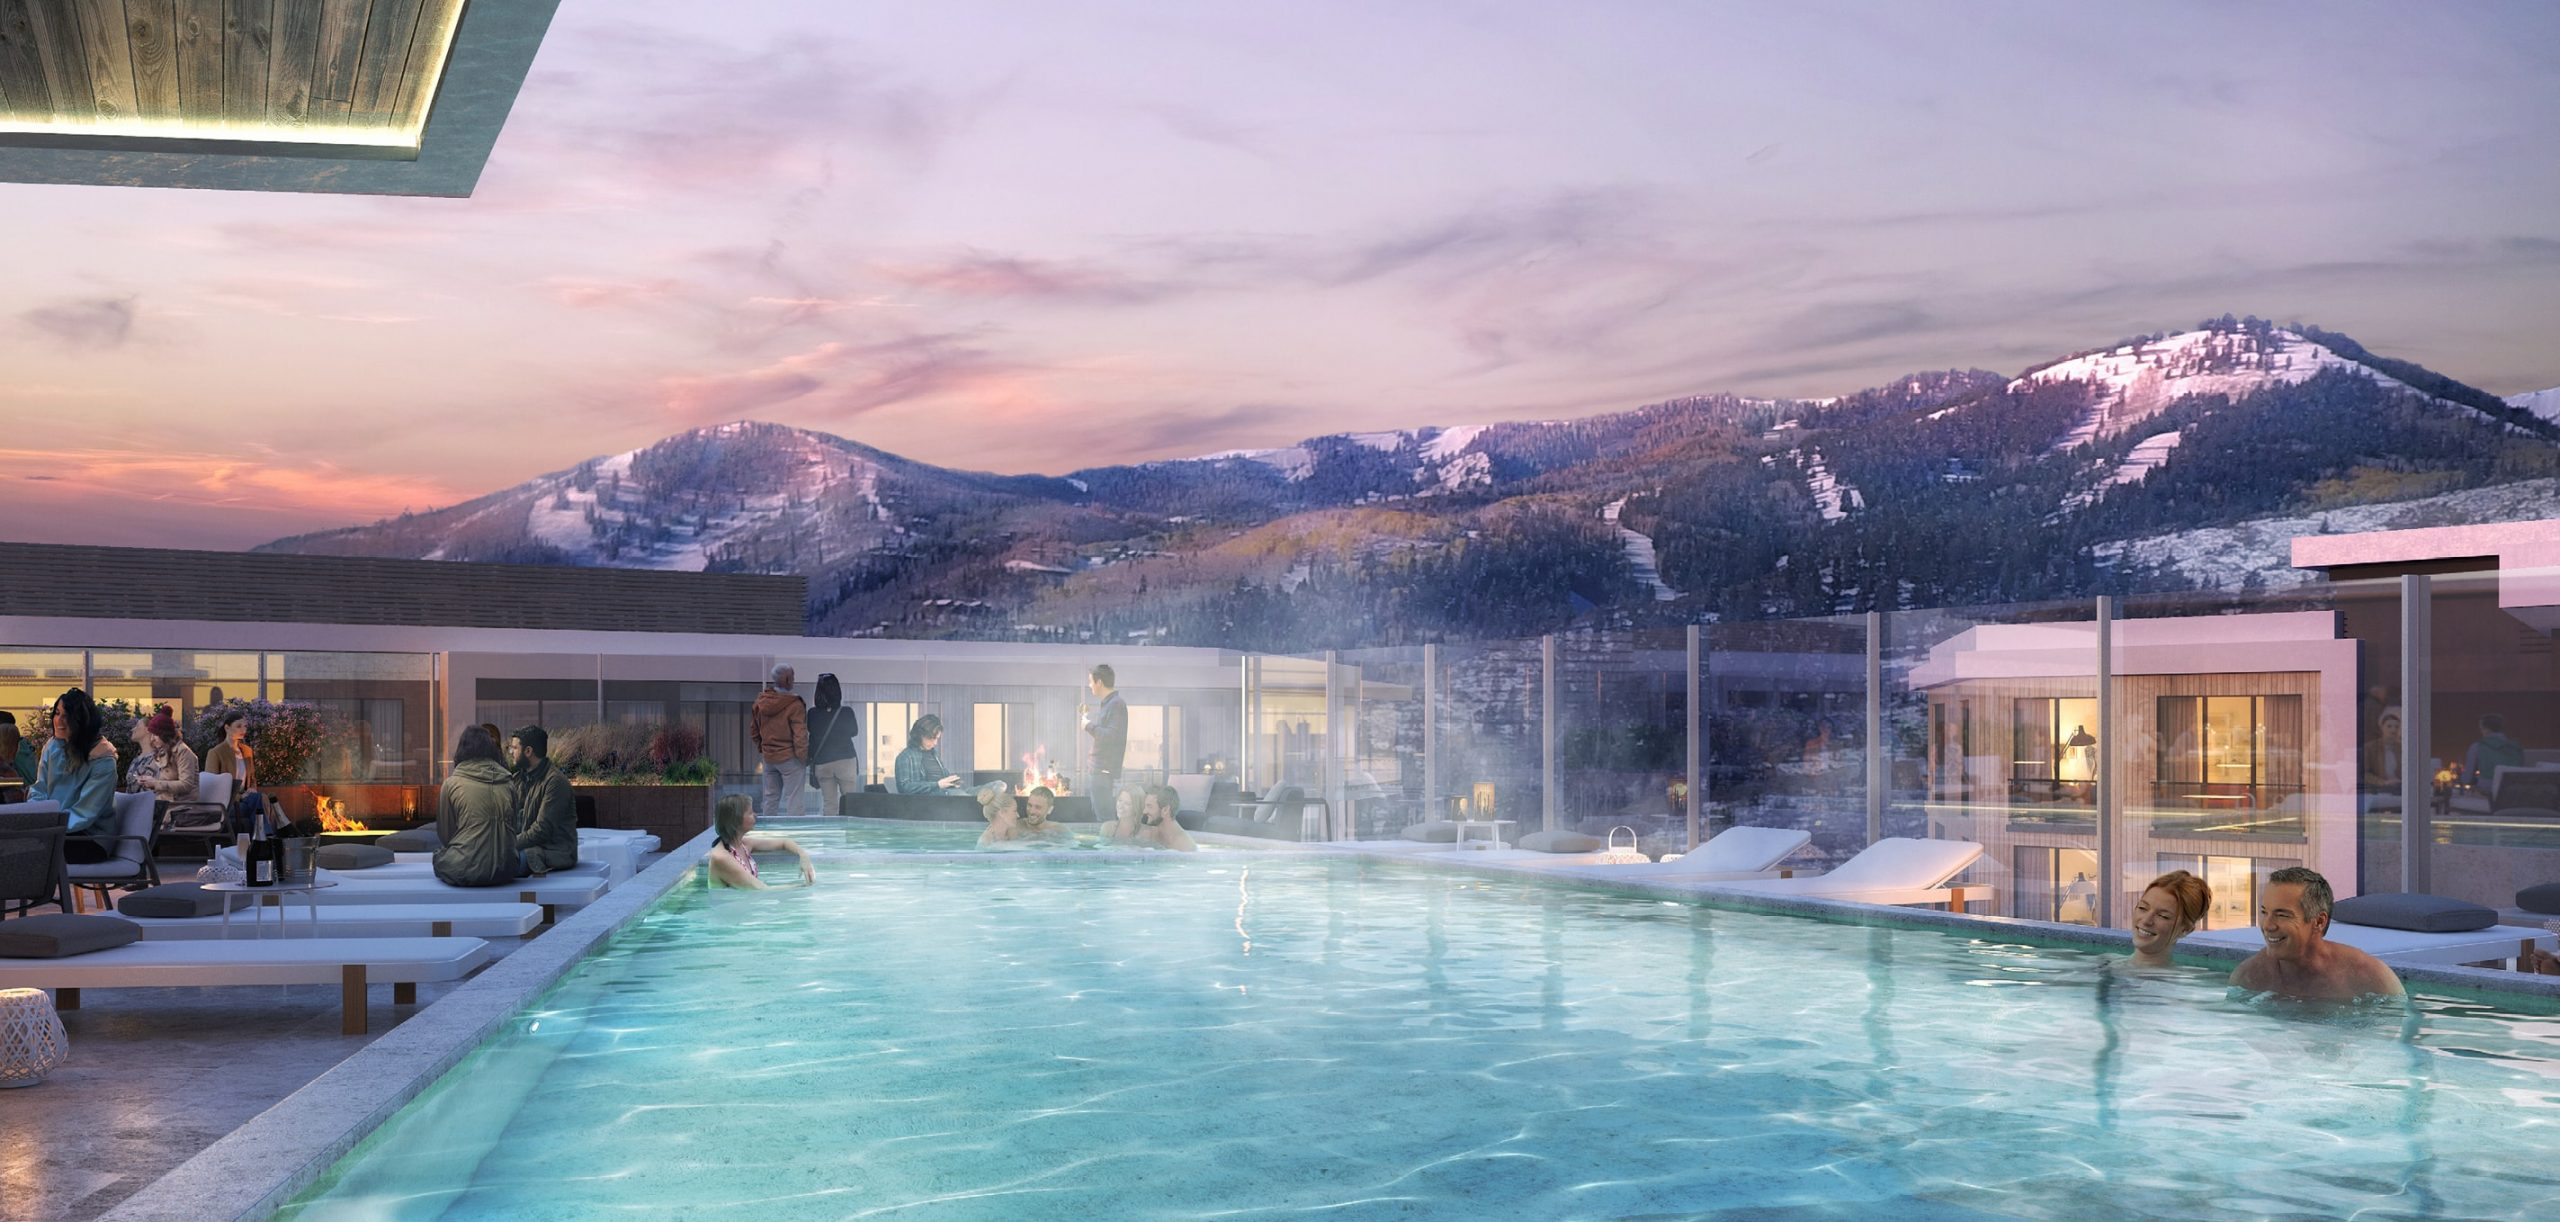 Pendry to Anchor New Village in Park City